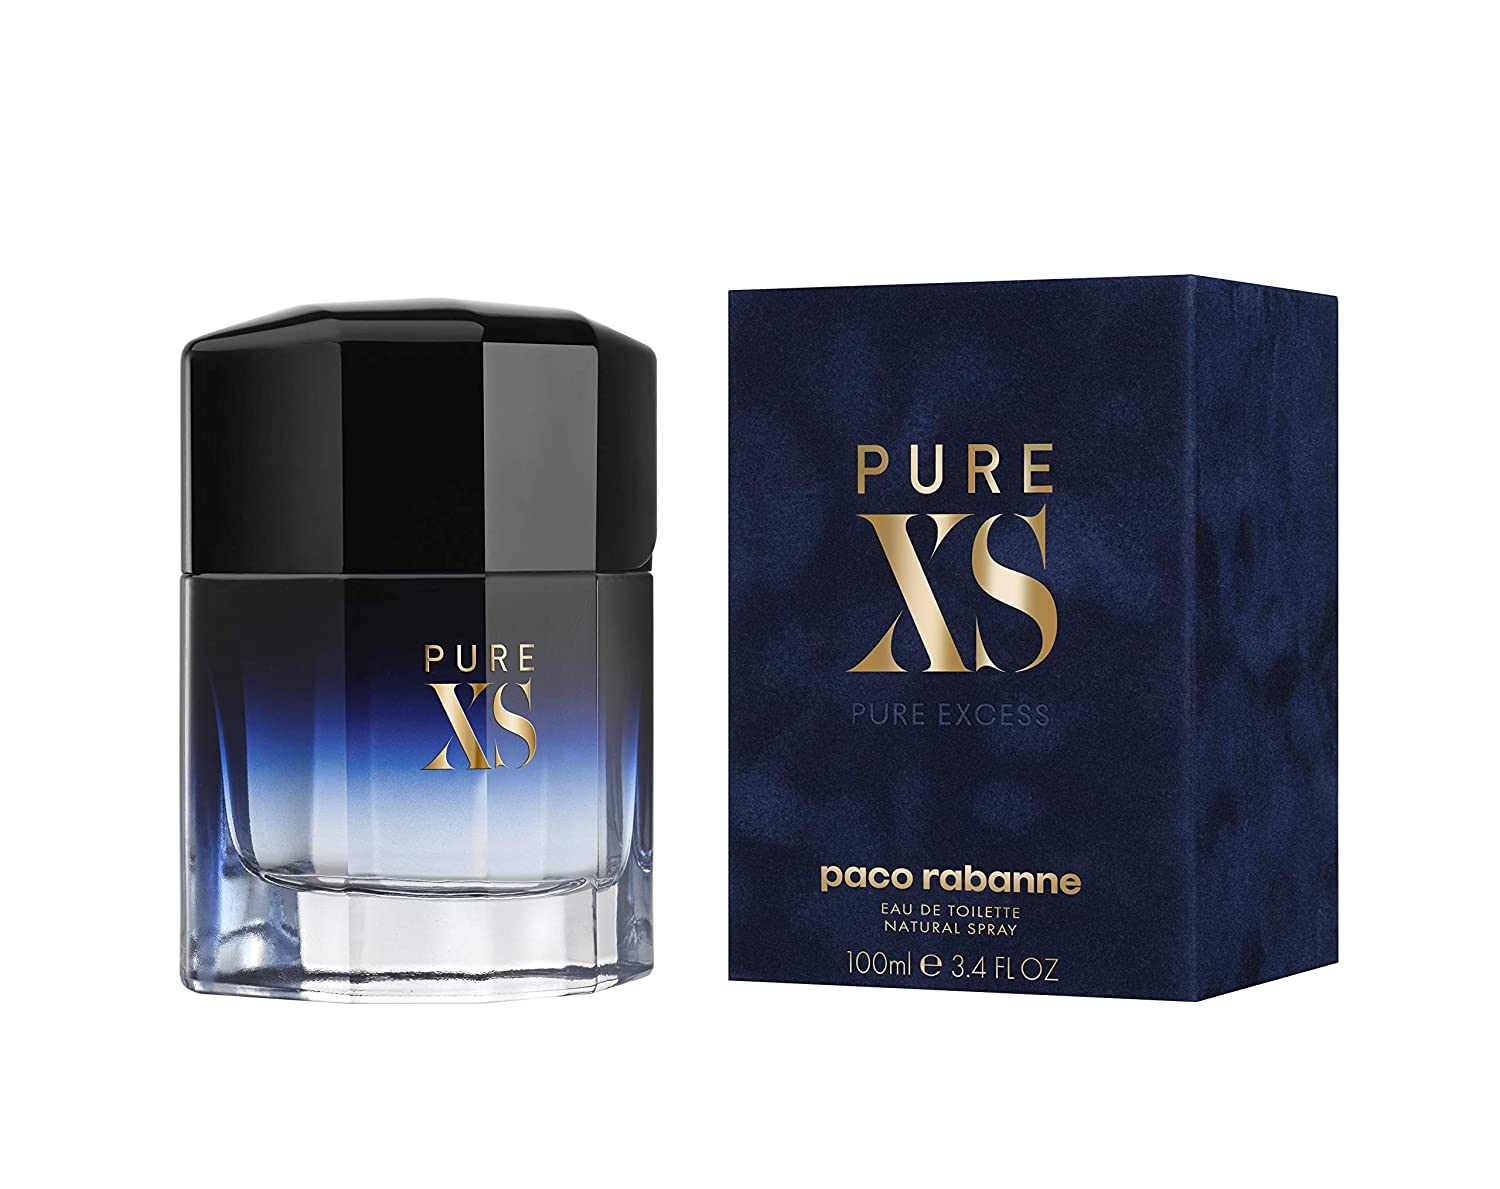 3ddb940784 Amazon.com   PACO RABANNE Pure Xs Eau de Toilette Spray